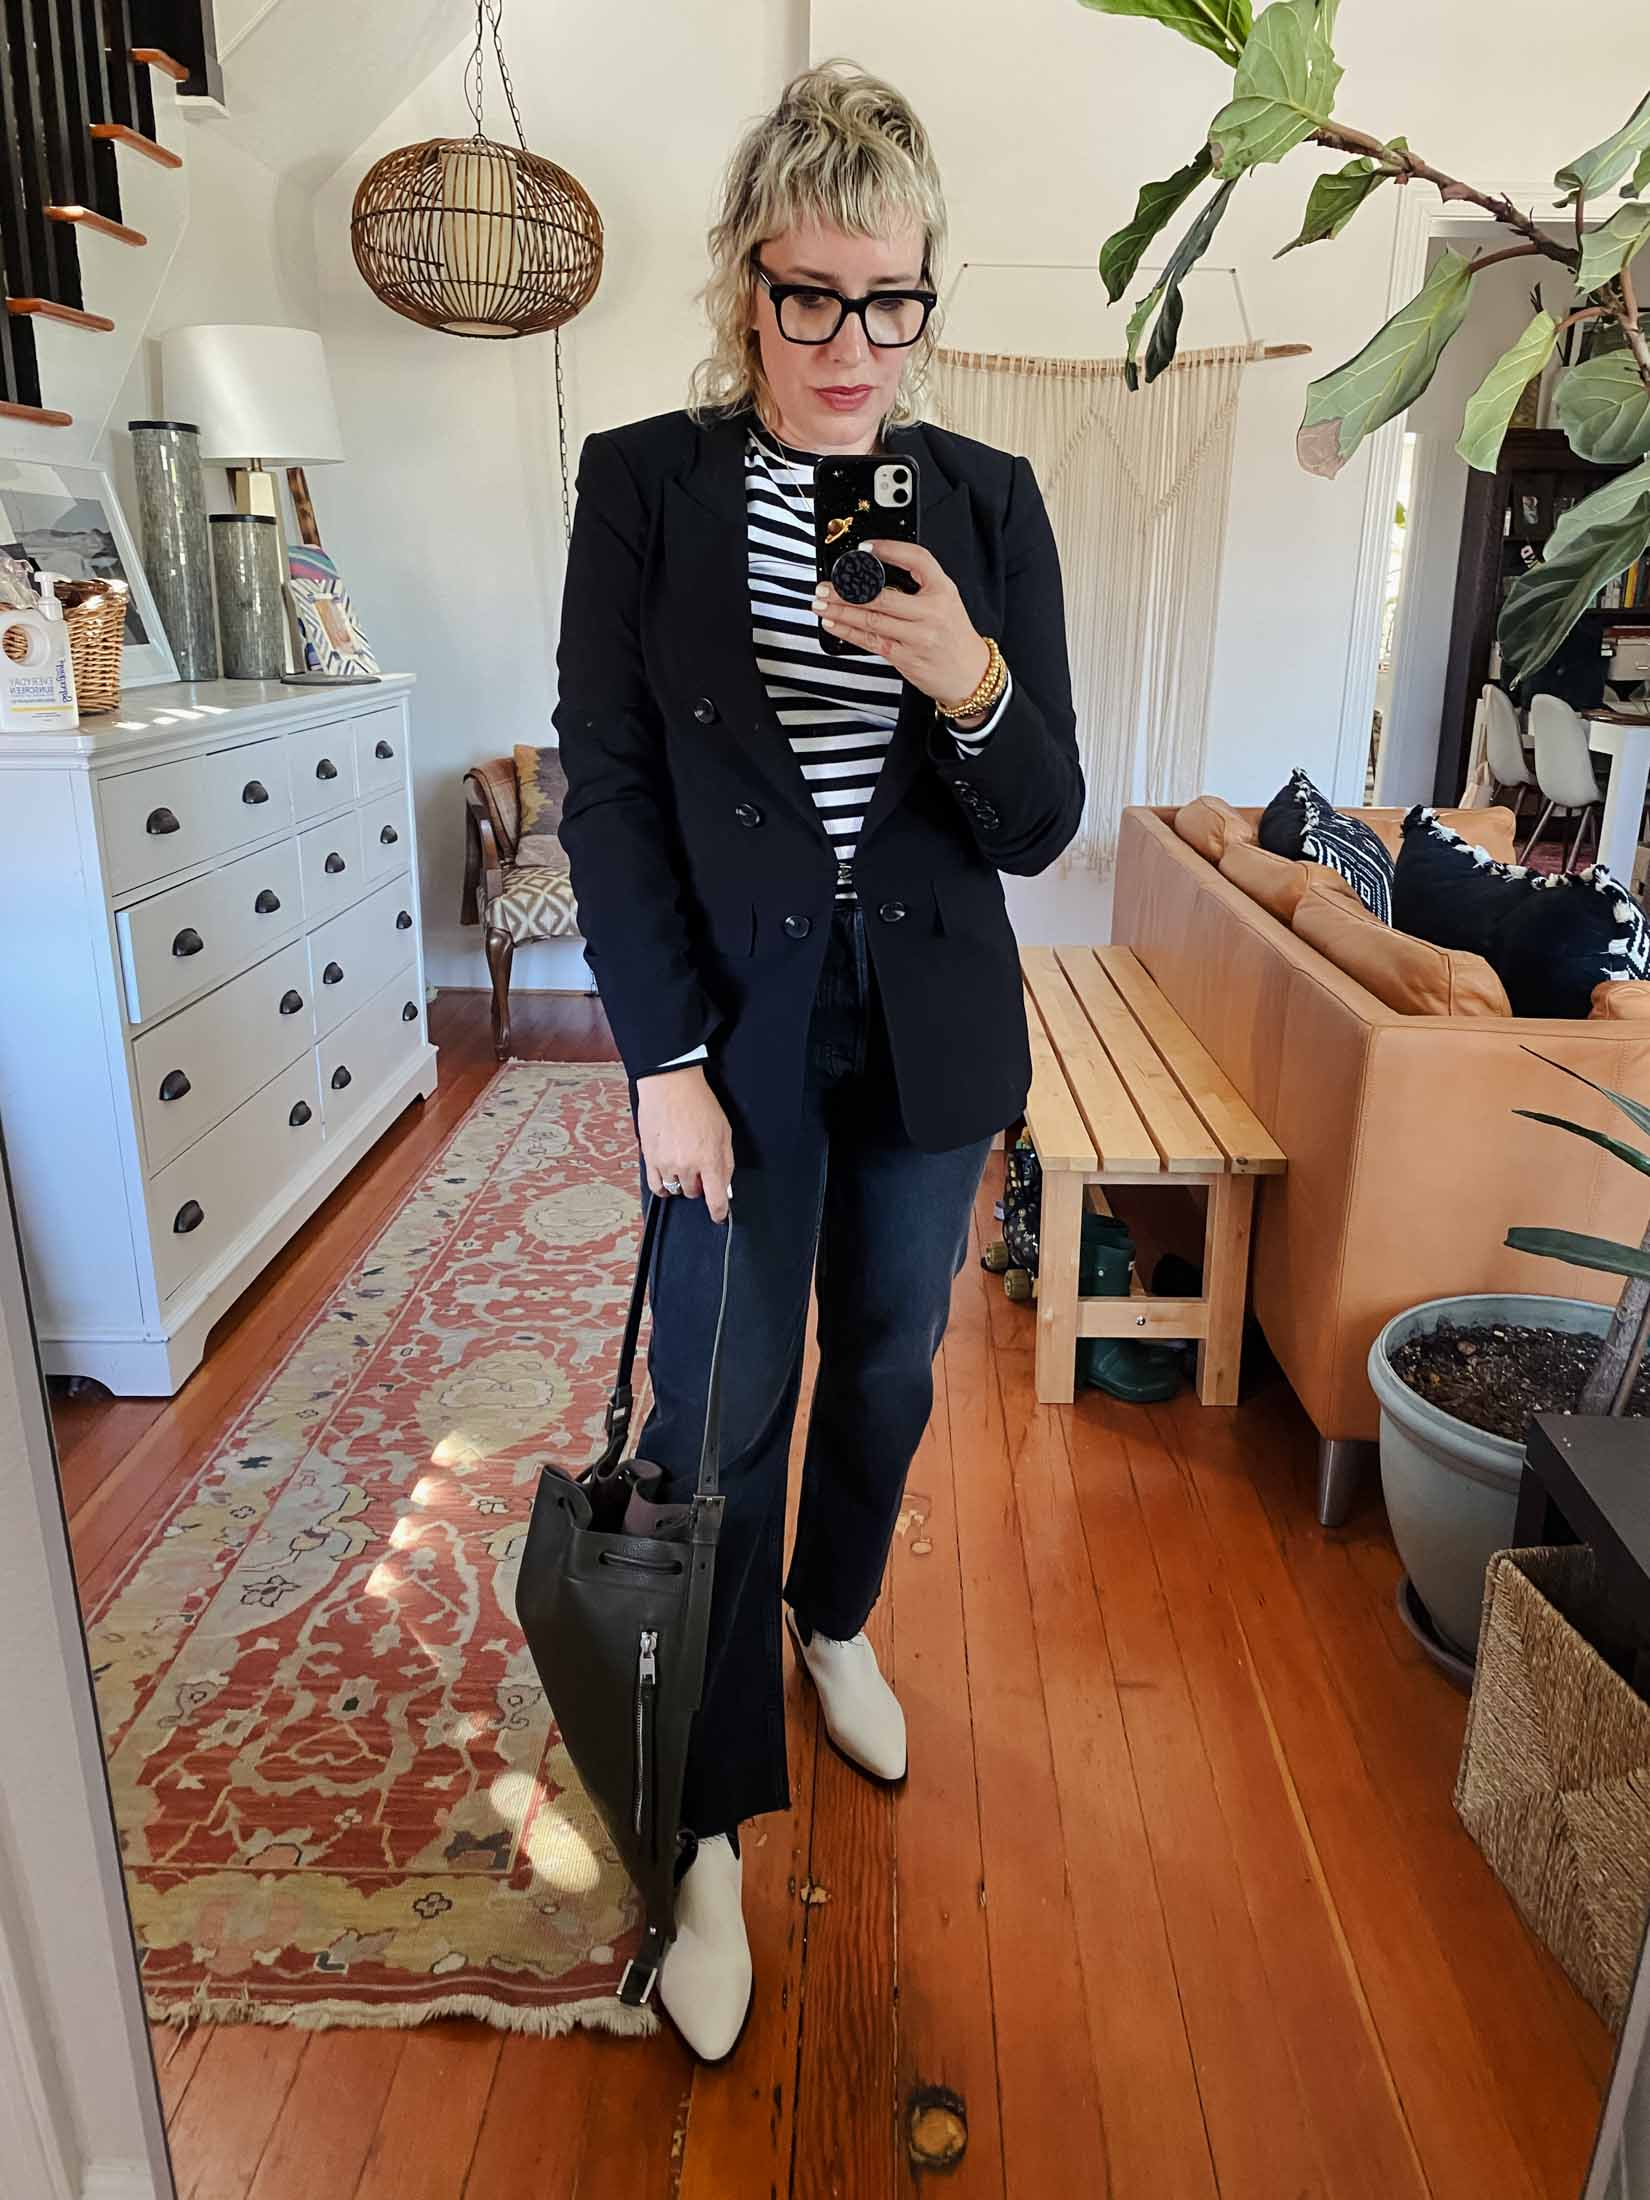 It really wouldn't be an NSale without me in a blazer. I'm so glad I found this 1.State blazer in the store.